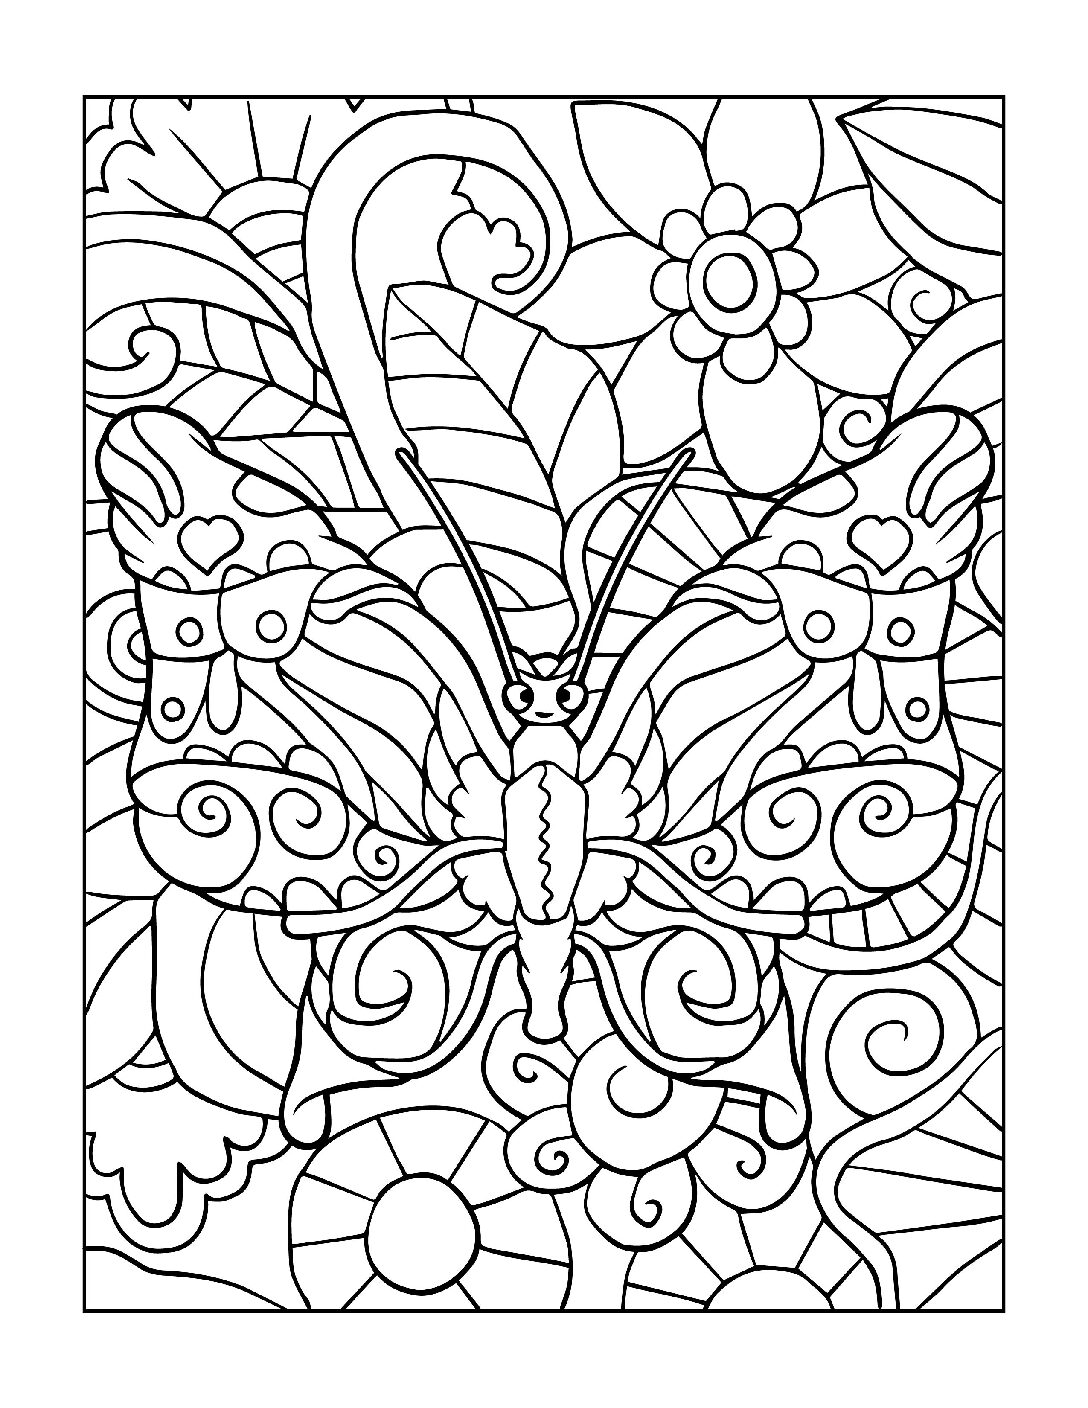 Coloring-Pages_Butterflies-7-01-1-pdf Free Printable Butterfly Colouring Pages